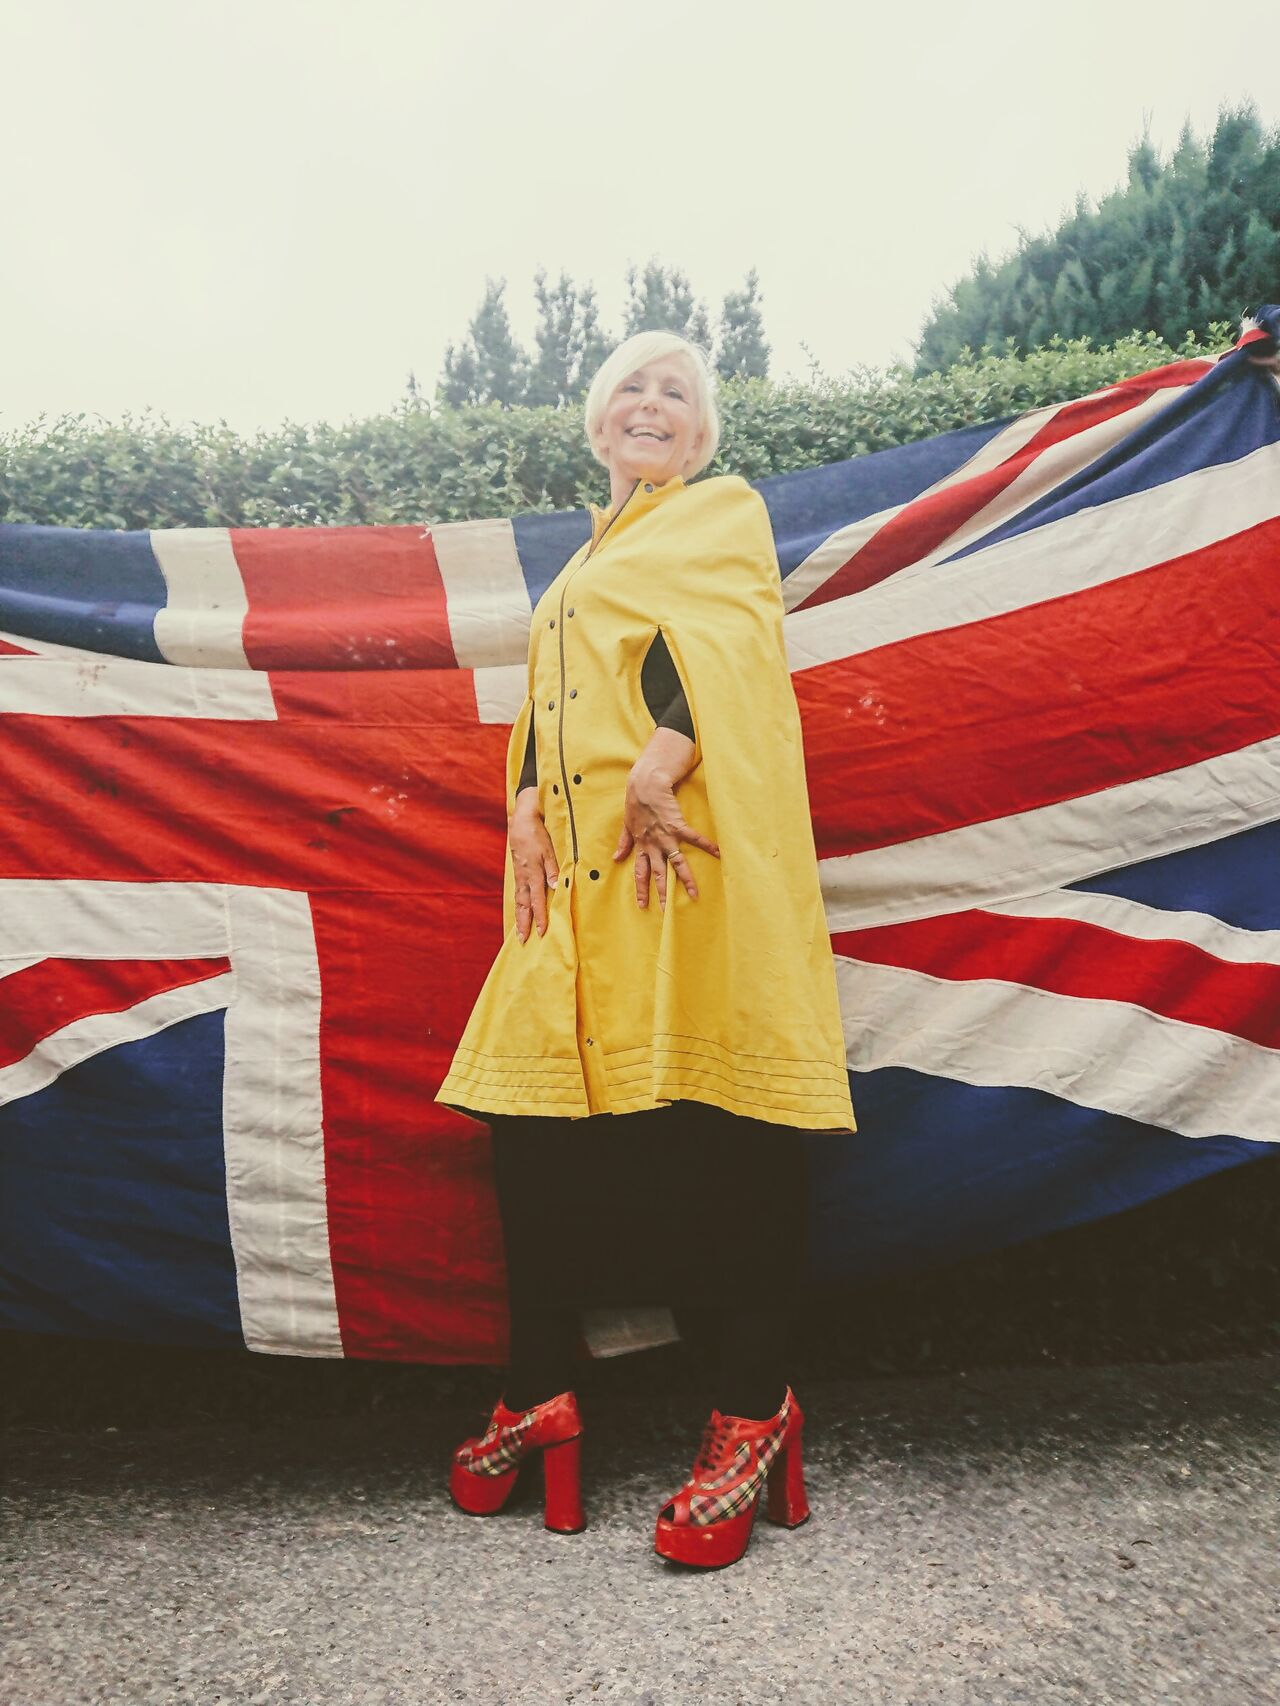 A woman wearing a reproduction Mary Quant cape poses in a garden in front of a union jack flag.